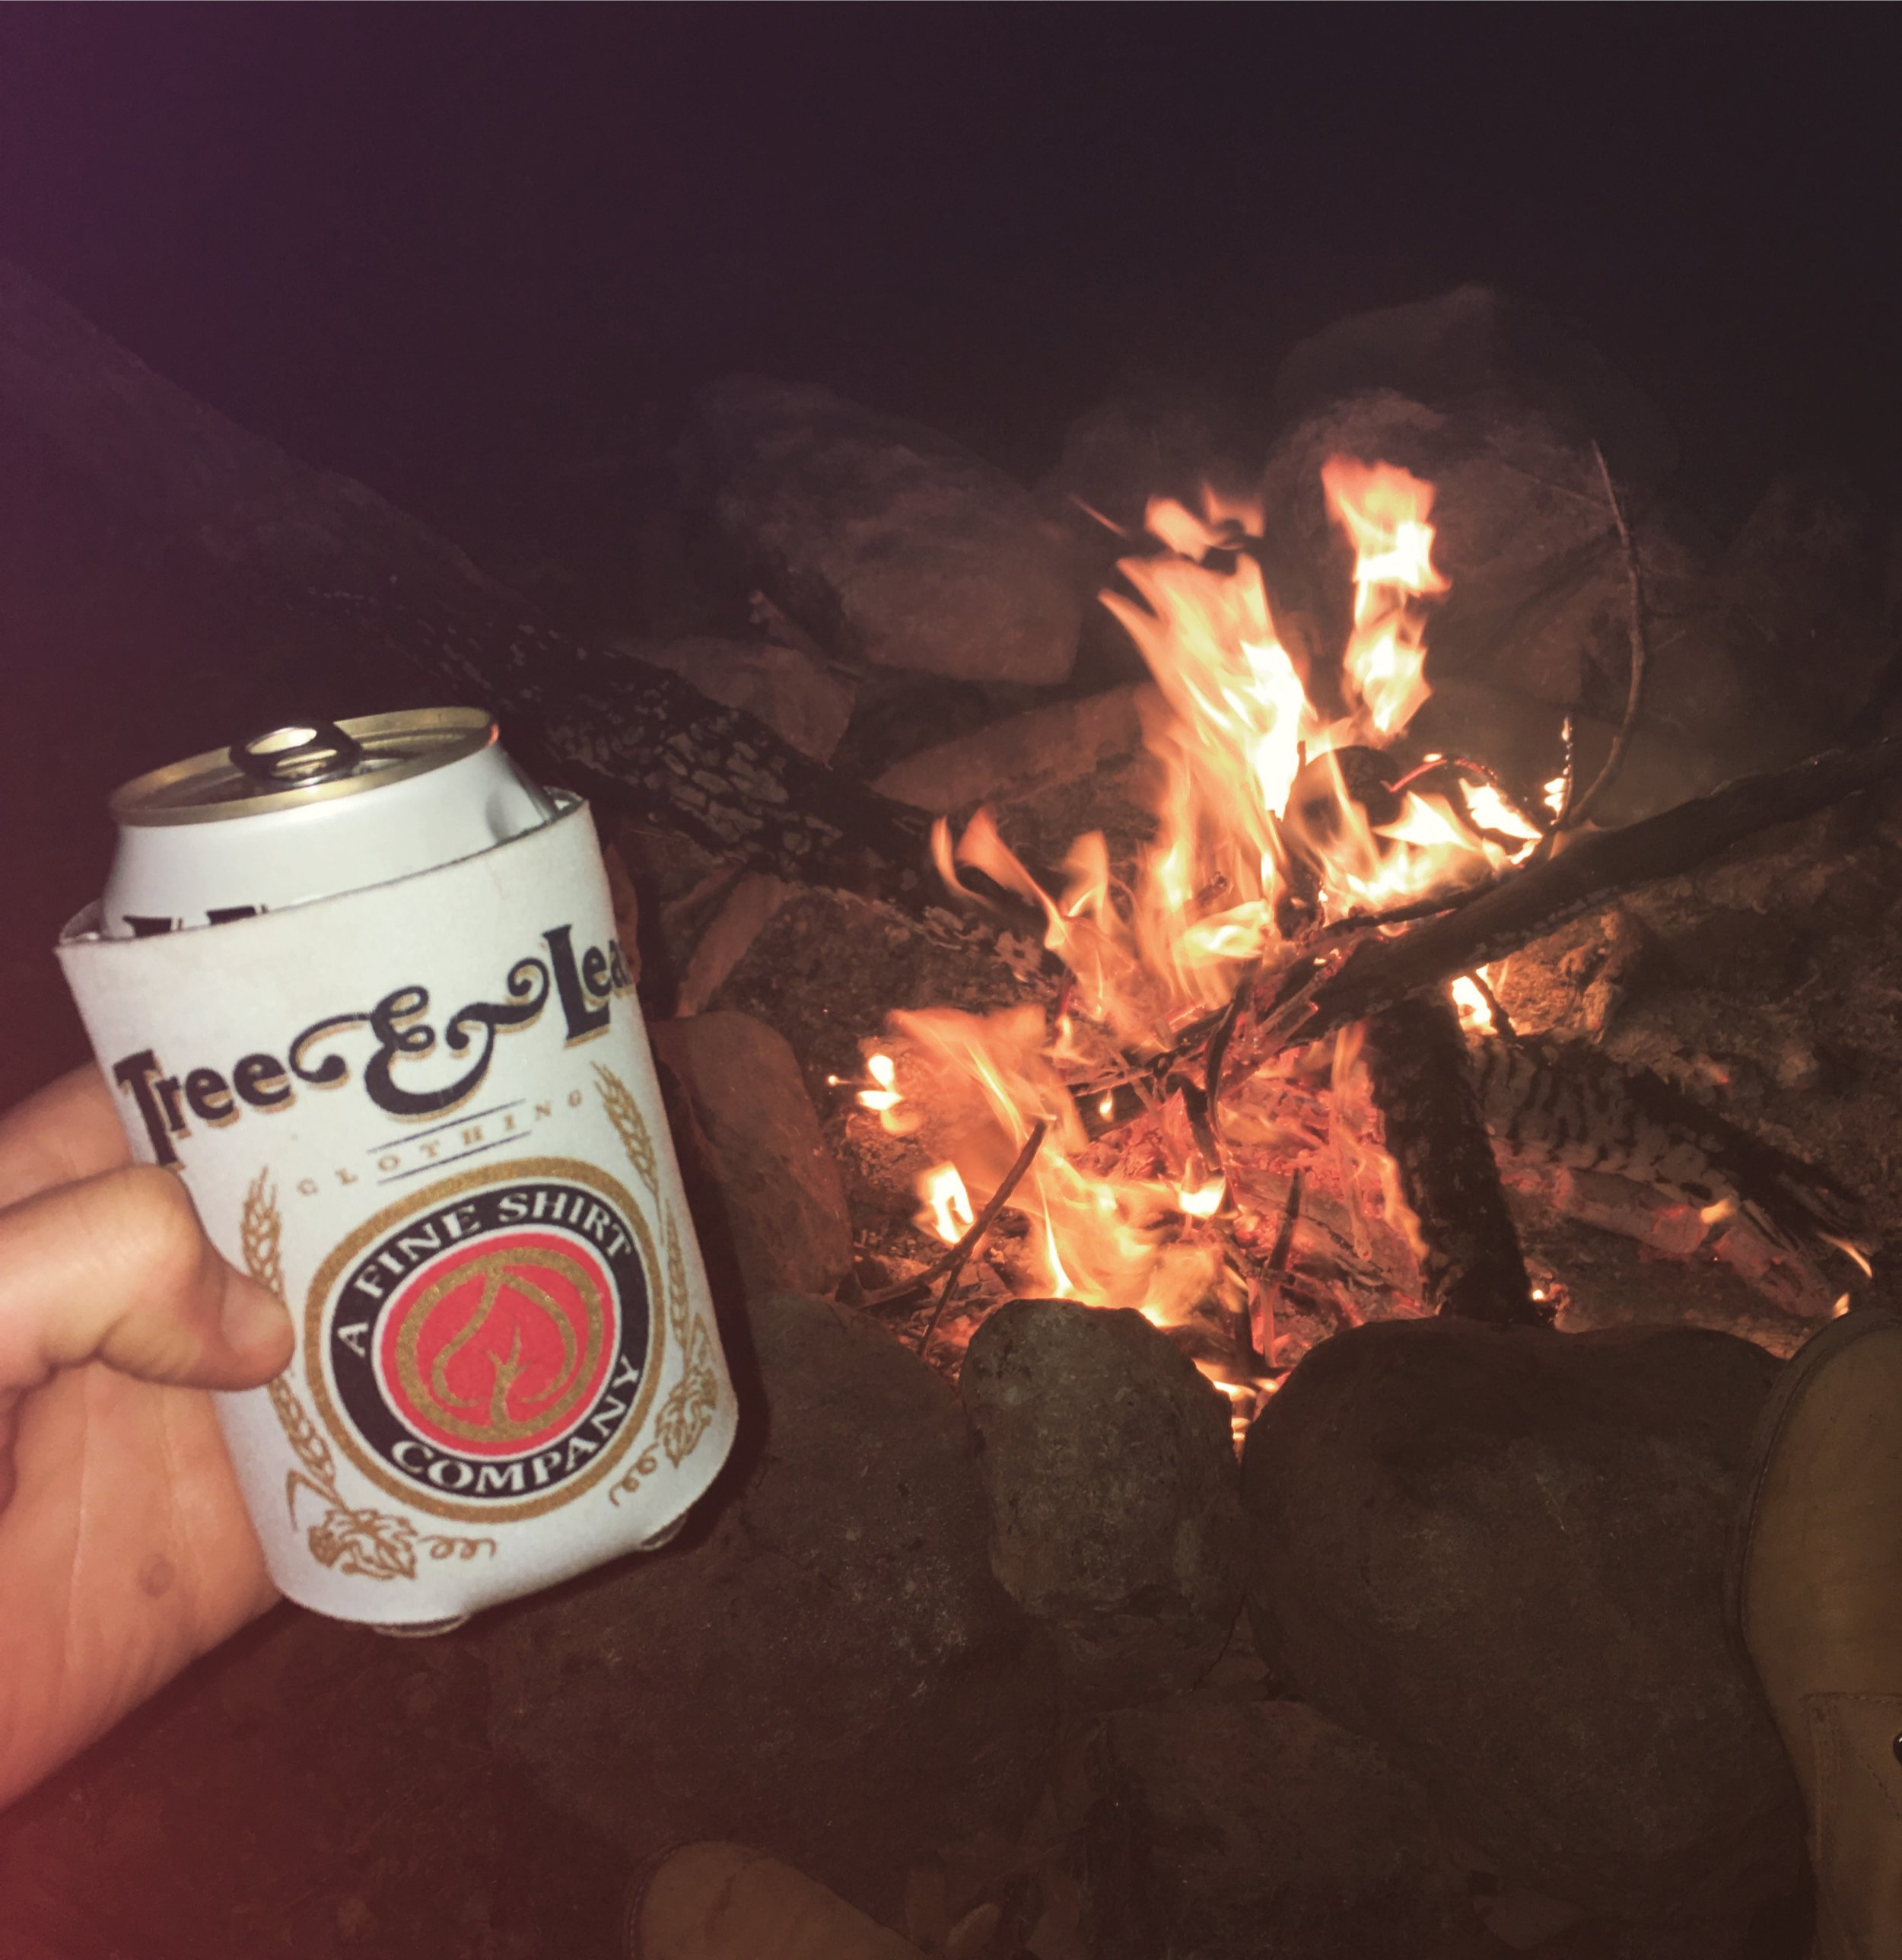 Cold brewski. Every time we go camping I make it a point to start a fire using only a lighter and whatever I can find around me. This trip I decided to save myself some time and energy and bring lighter fluid. Guess what? I forgot it, so back to the ol'grind.